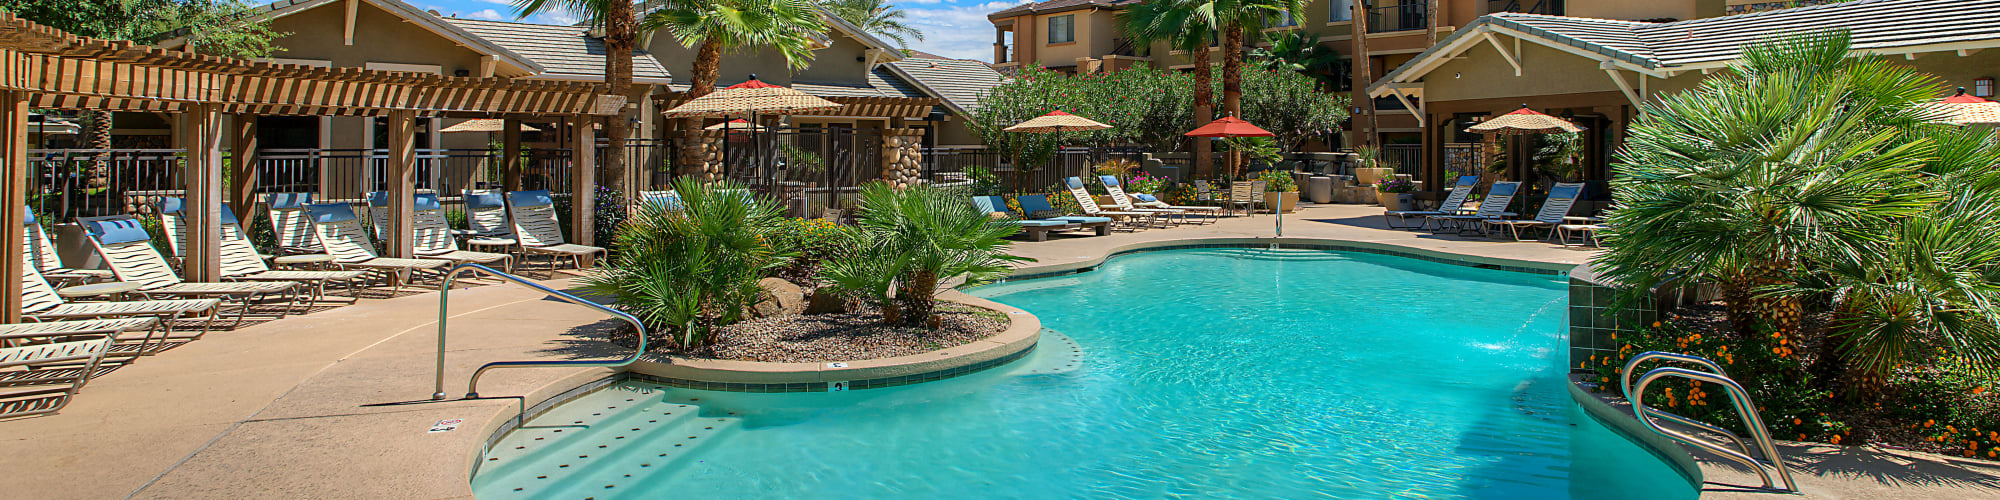 Virtual tour of Azul at Spectrum in Gilbert, Arizona